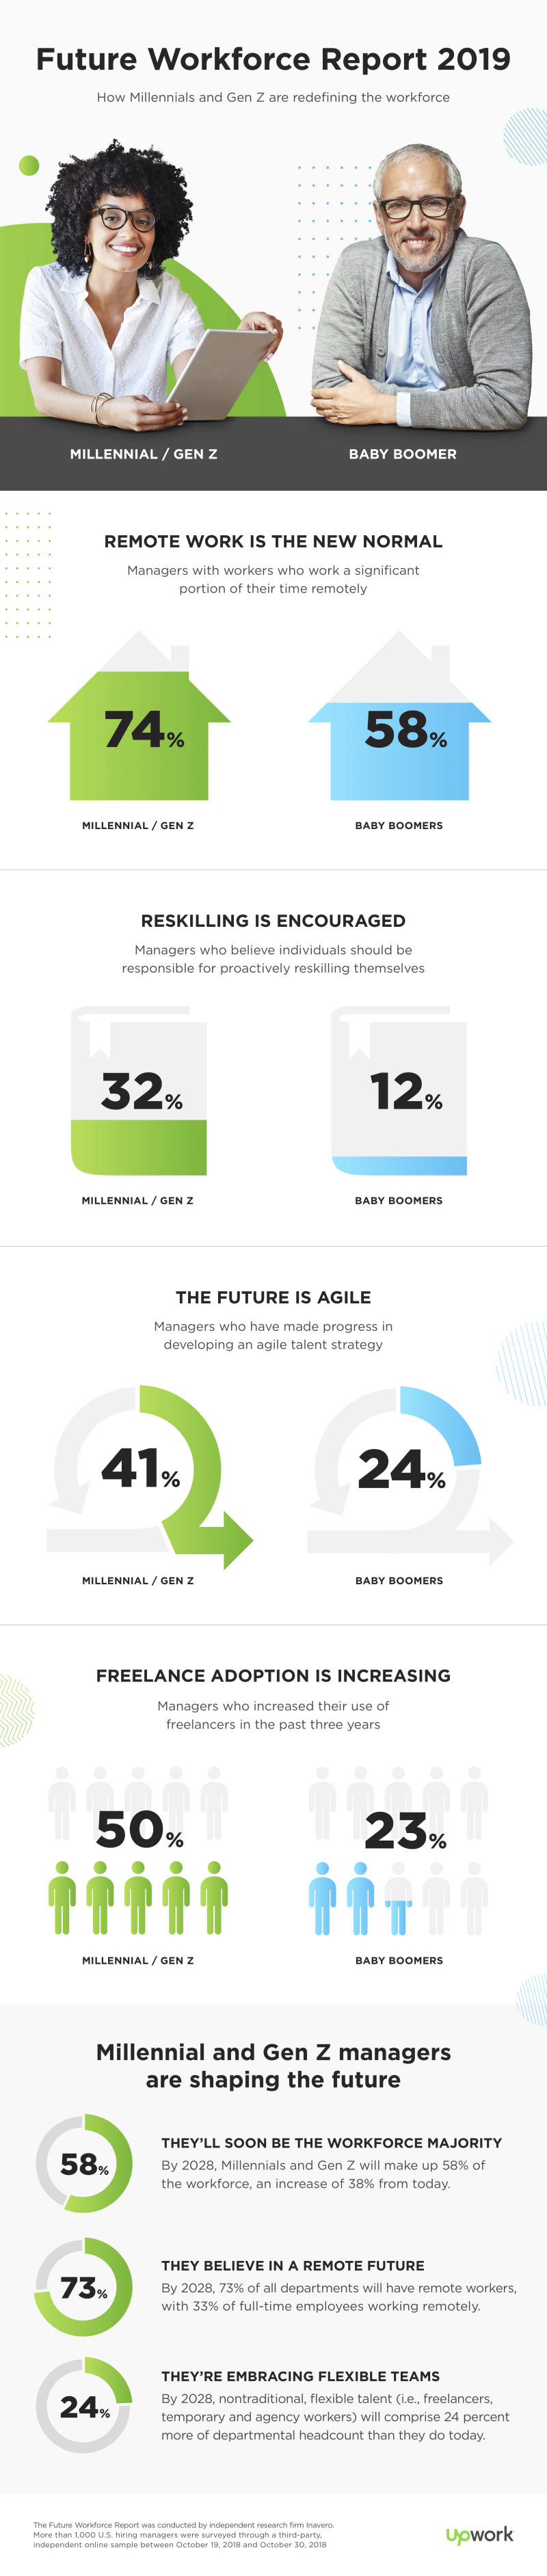 """Third Annual """"Future Workforce Report"""" Sheds Light on How Younger Generations are Reshaping the Future of Work"""